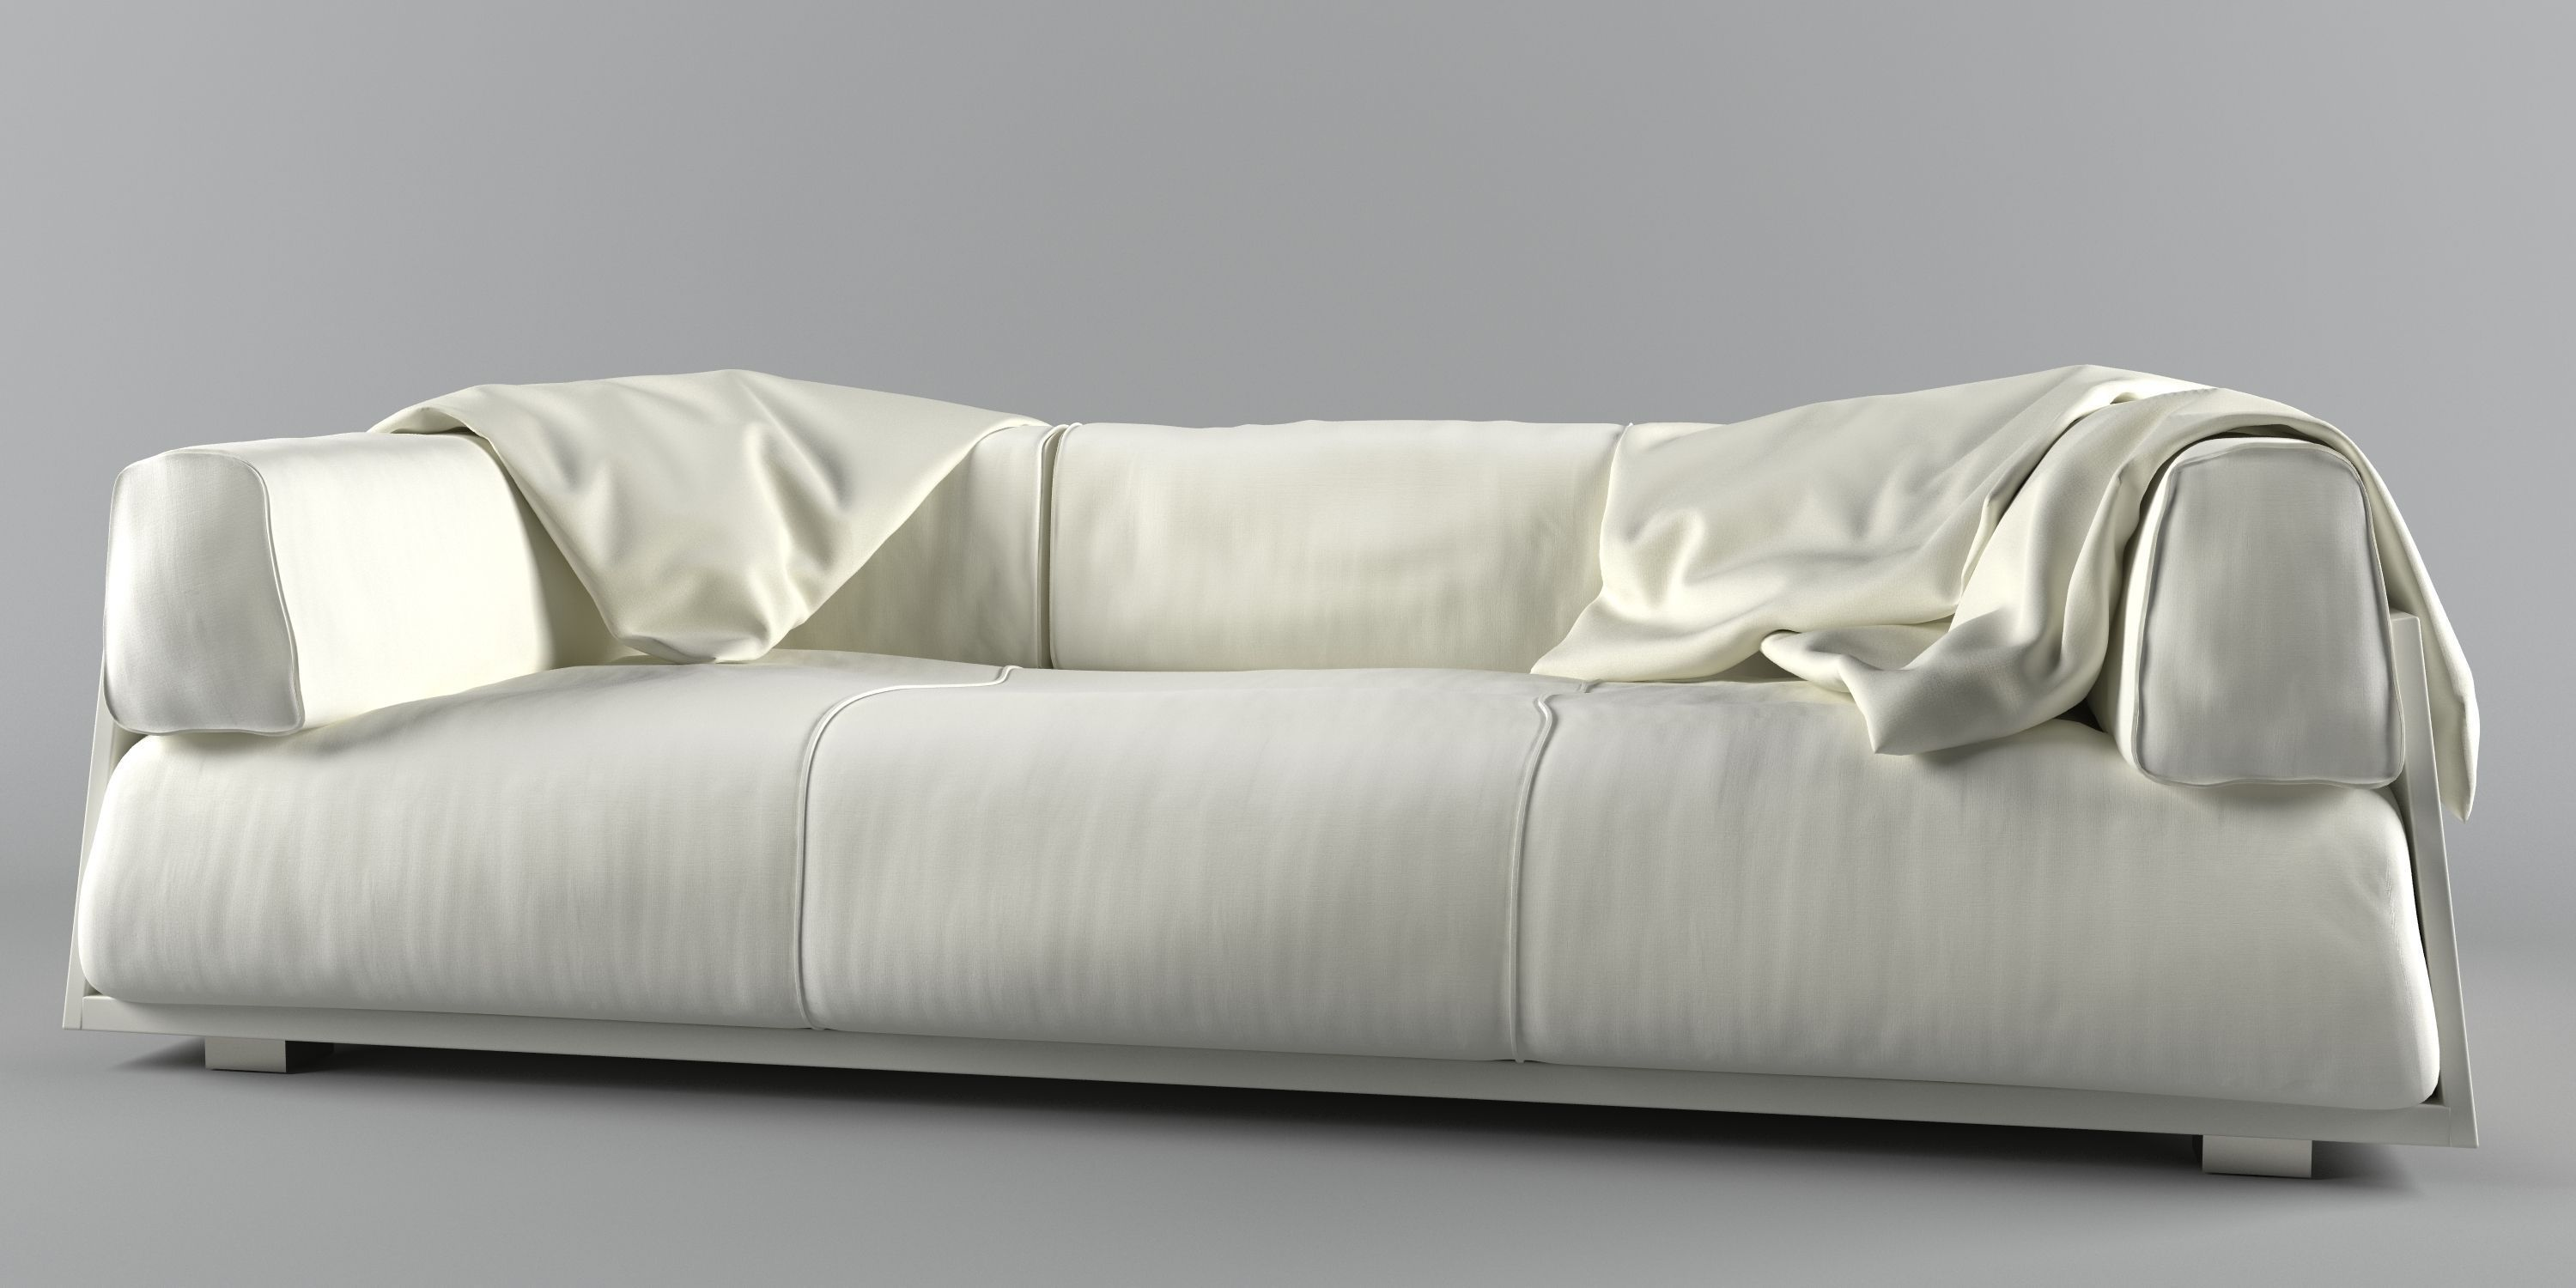 Merveilleux ... Hard Soft Sofa 3d Model Max Obj Fbx Mtl Unitypackage ...